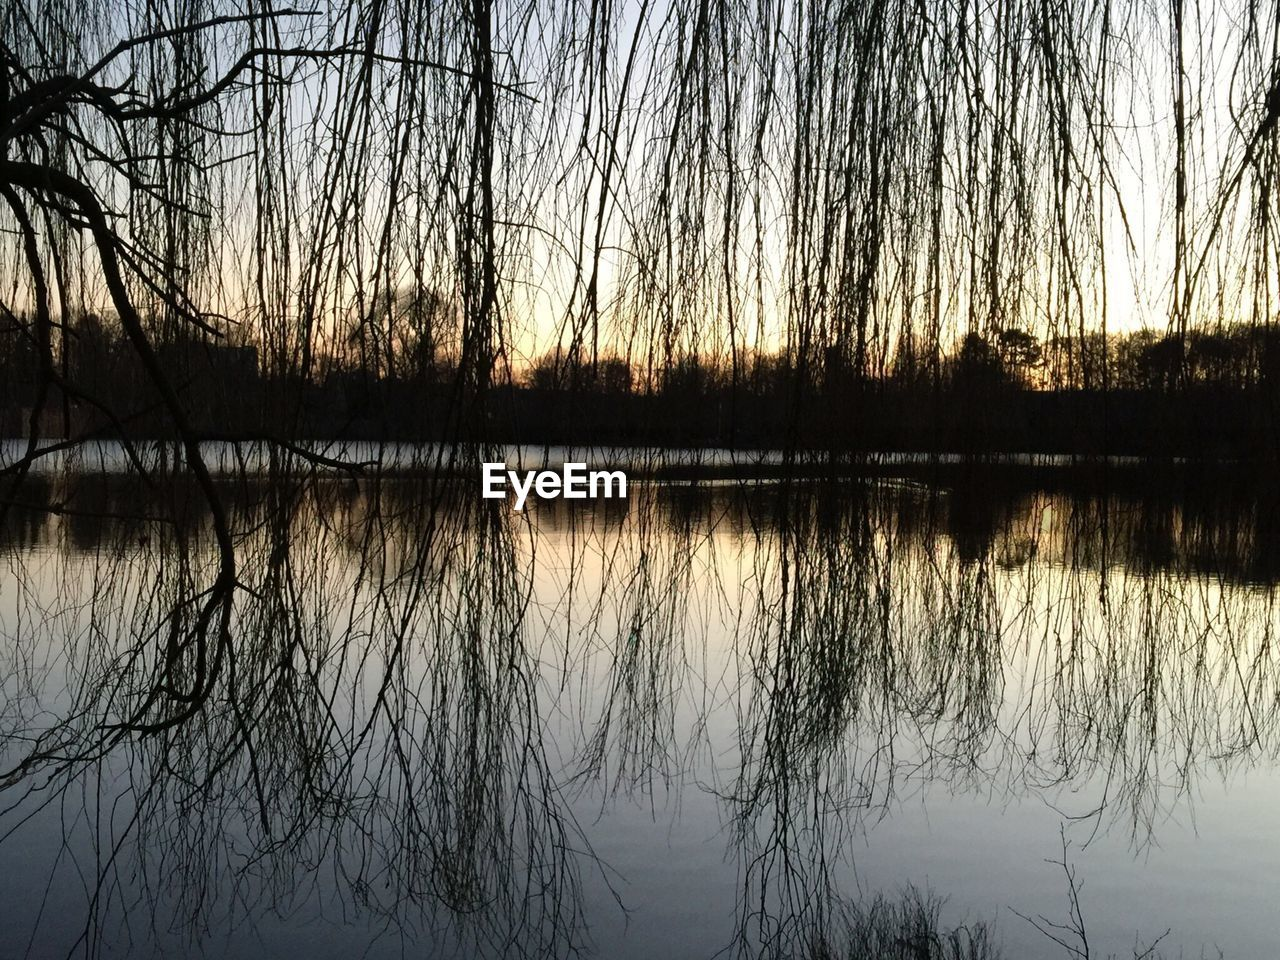 reflection, tranquility, nature, lake, tree, tranquil scene, beauty in nature, scenics, sunset, water, silhouette, bare tree, majestic, outdoors, idyllic, no people, sky, travel destinations, branch, day